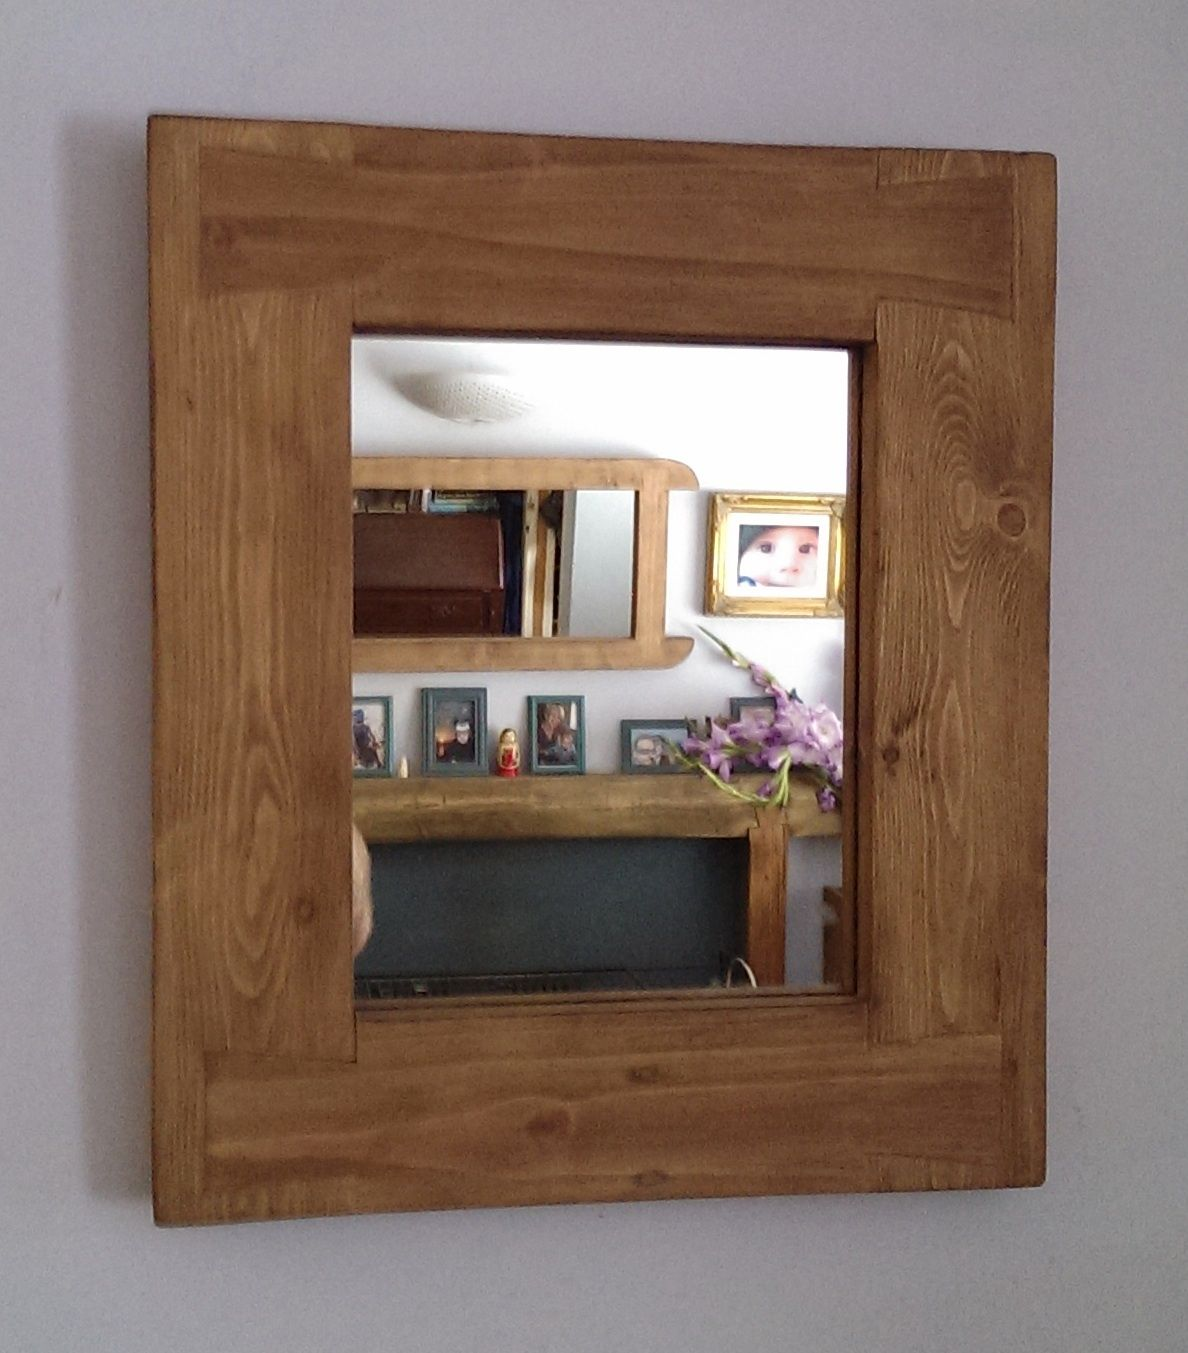 Designed and handmade from reclaimed pine by marc in somerset designed and handmade from reclaimed pine by marc in somerset solid wood framed mirror approx amipublicfo Choice Image